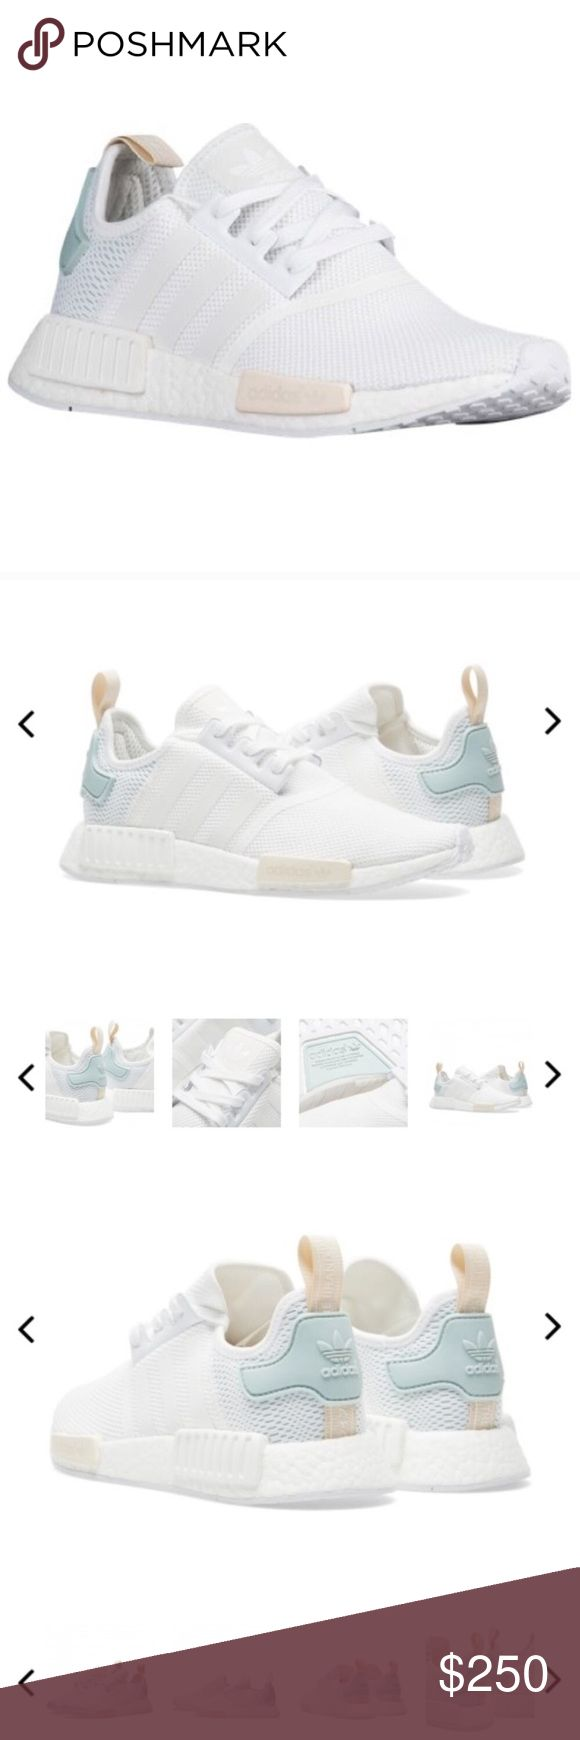 Authentic adidas nmd reflective white & mint. RARE RARE AND SOLD OUT. White adidas women's nmd's in white and mint. Comes in box. Authentic. Stripes on side are reflective  Adidas Shoes Sneakers